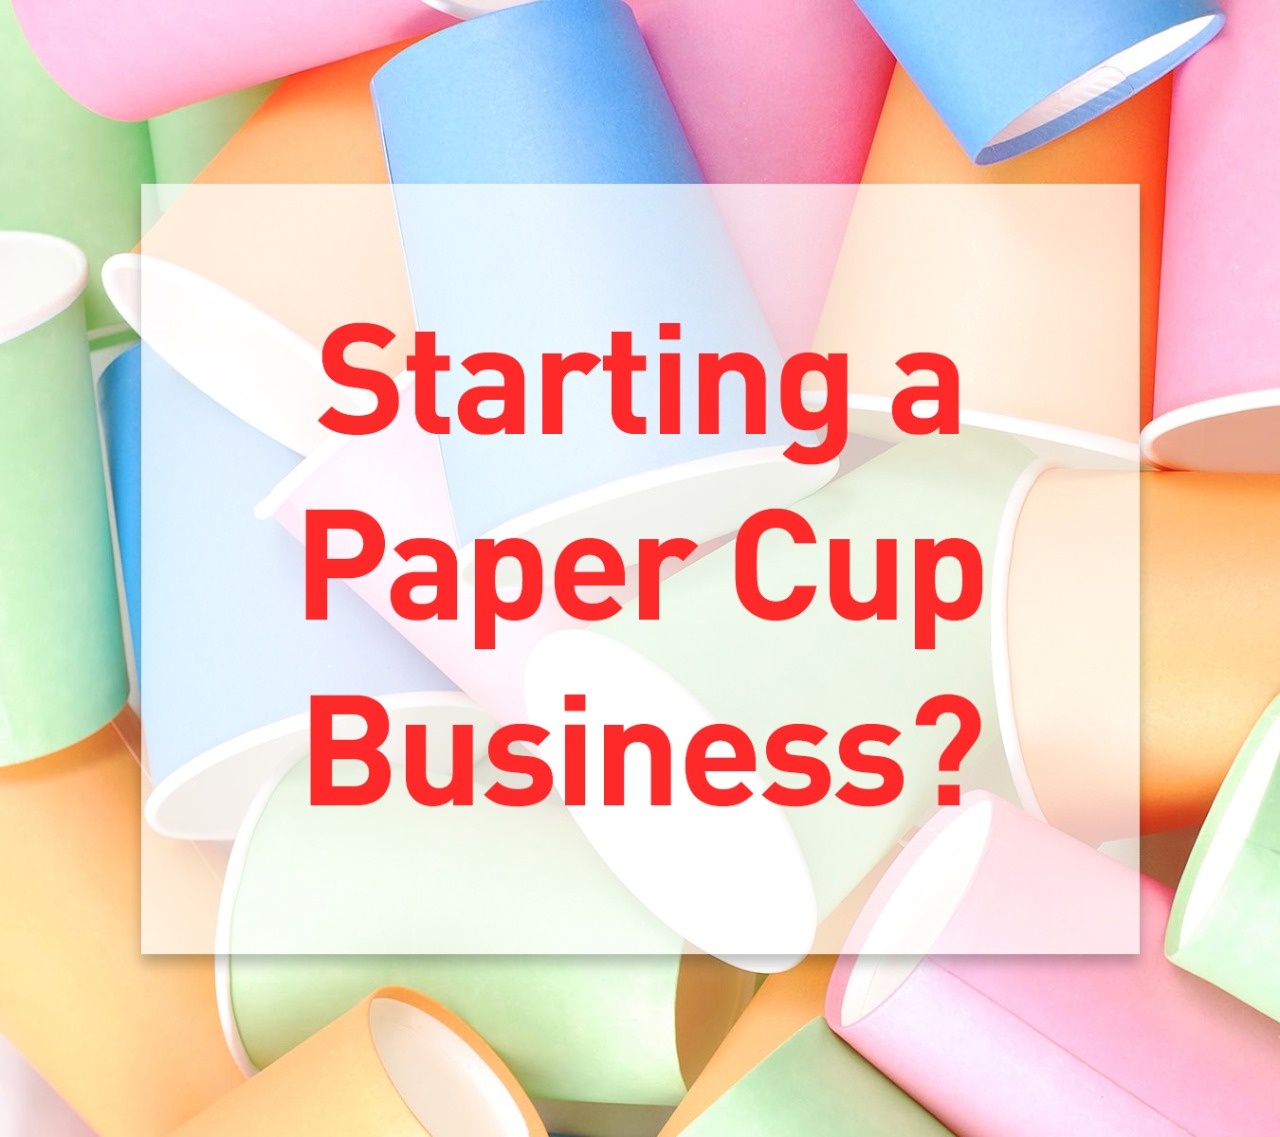 Starting a paper cup business